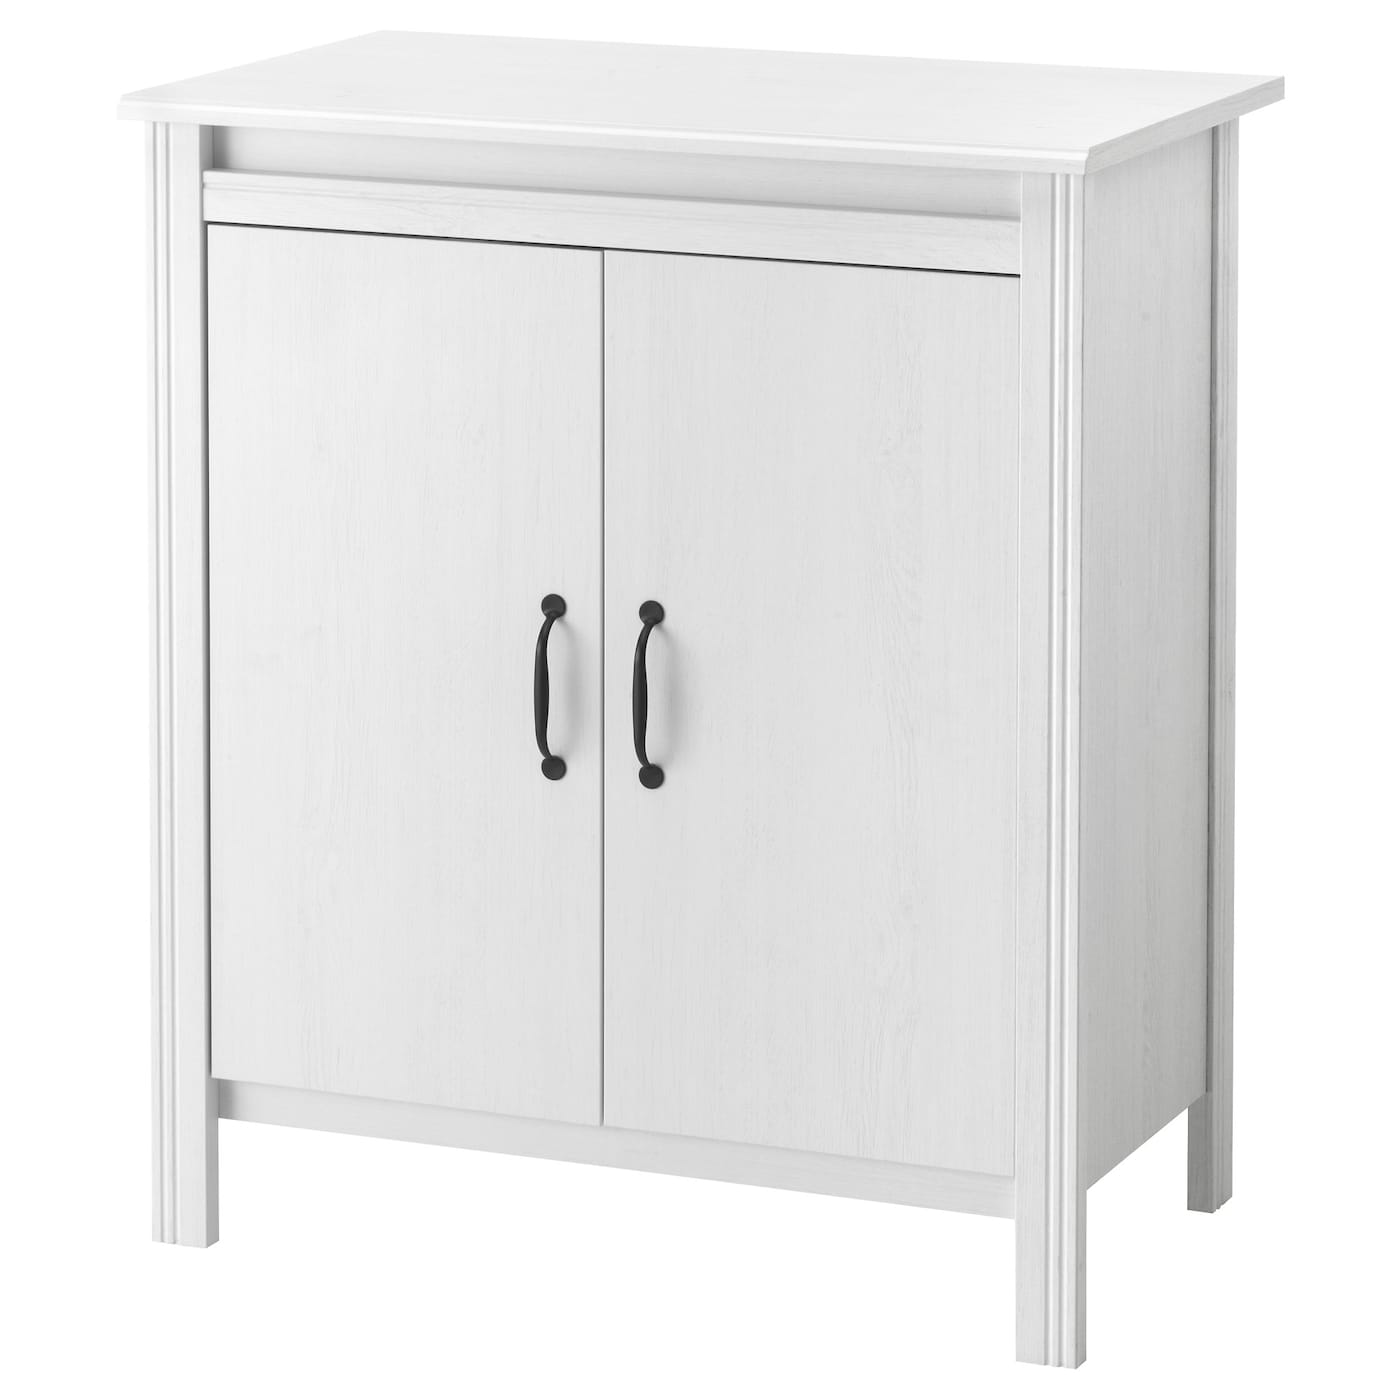 Ikea brusali cabinet with doors adjustable shelves so you can customise your storage as needed